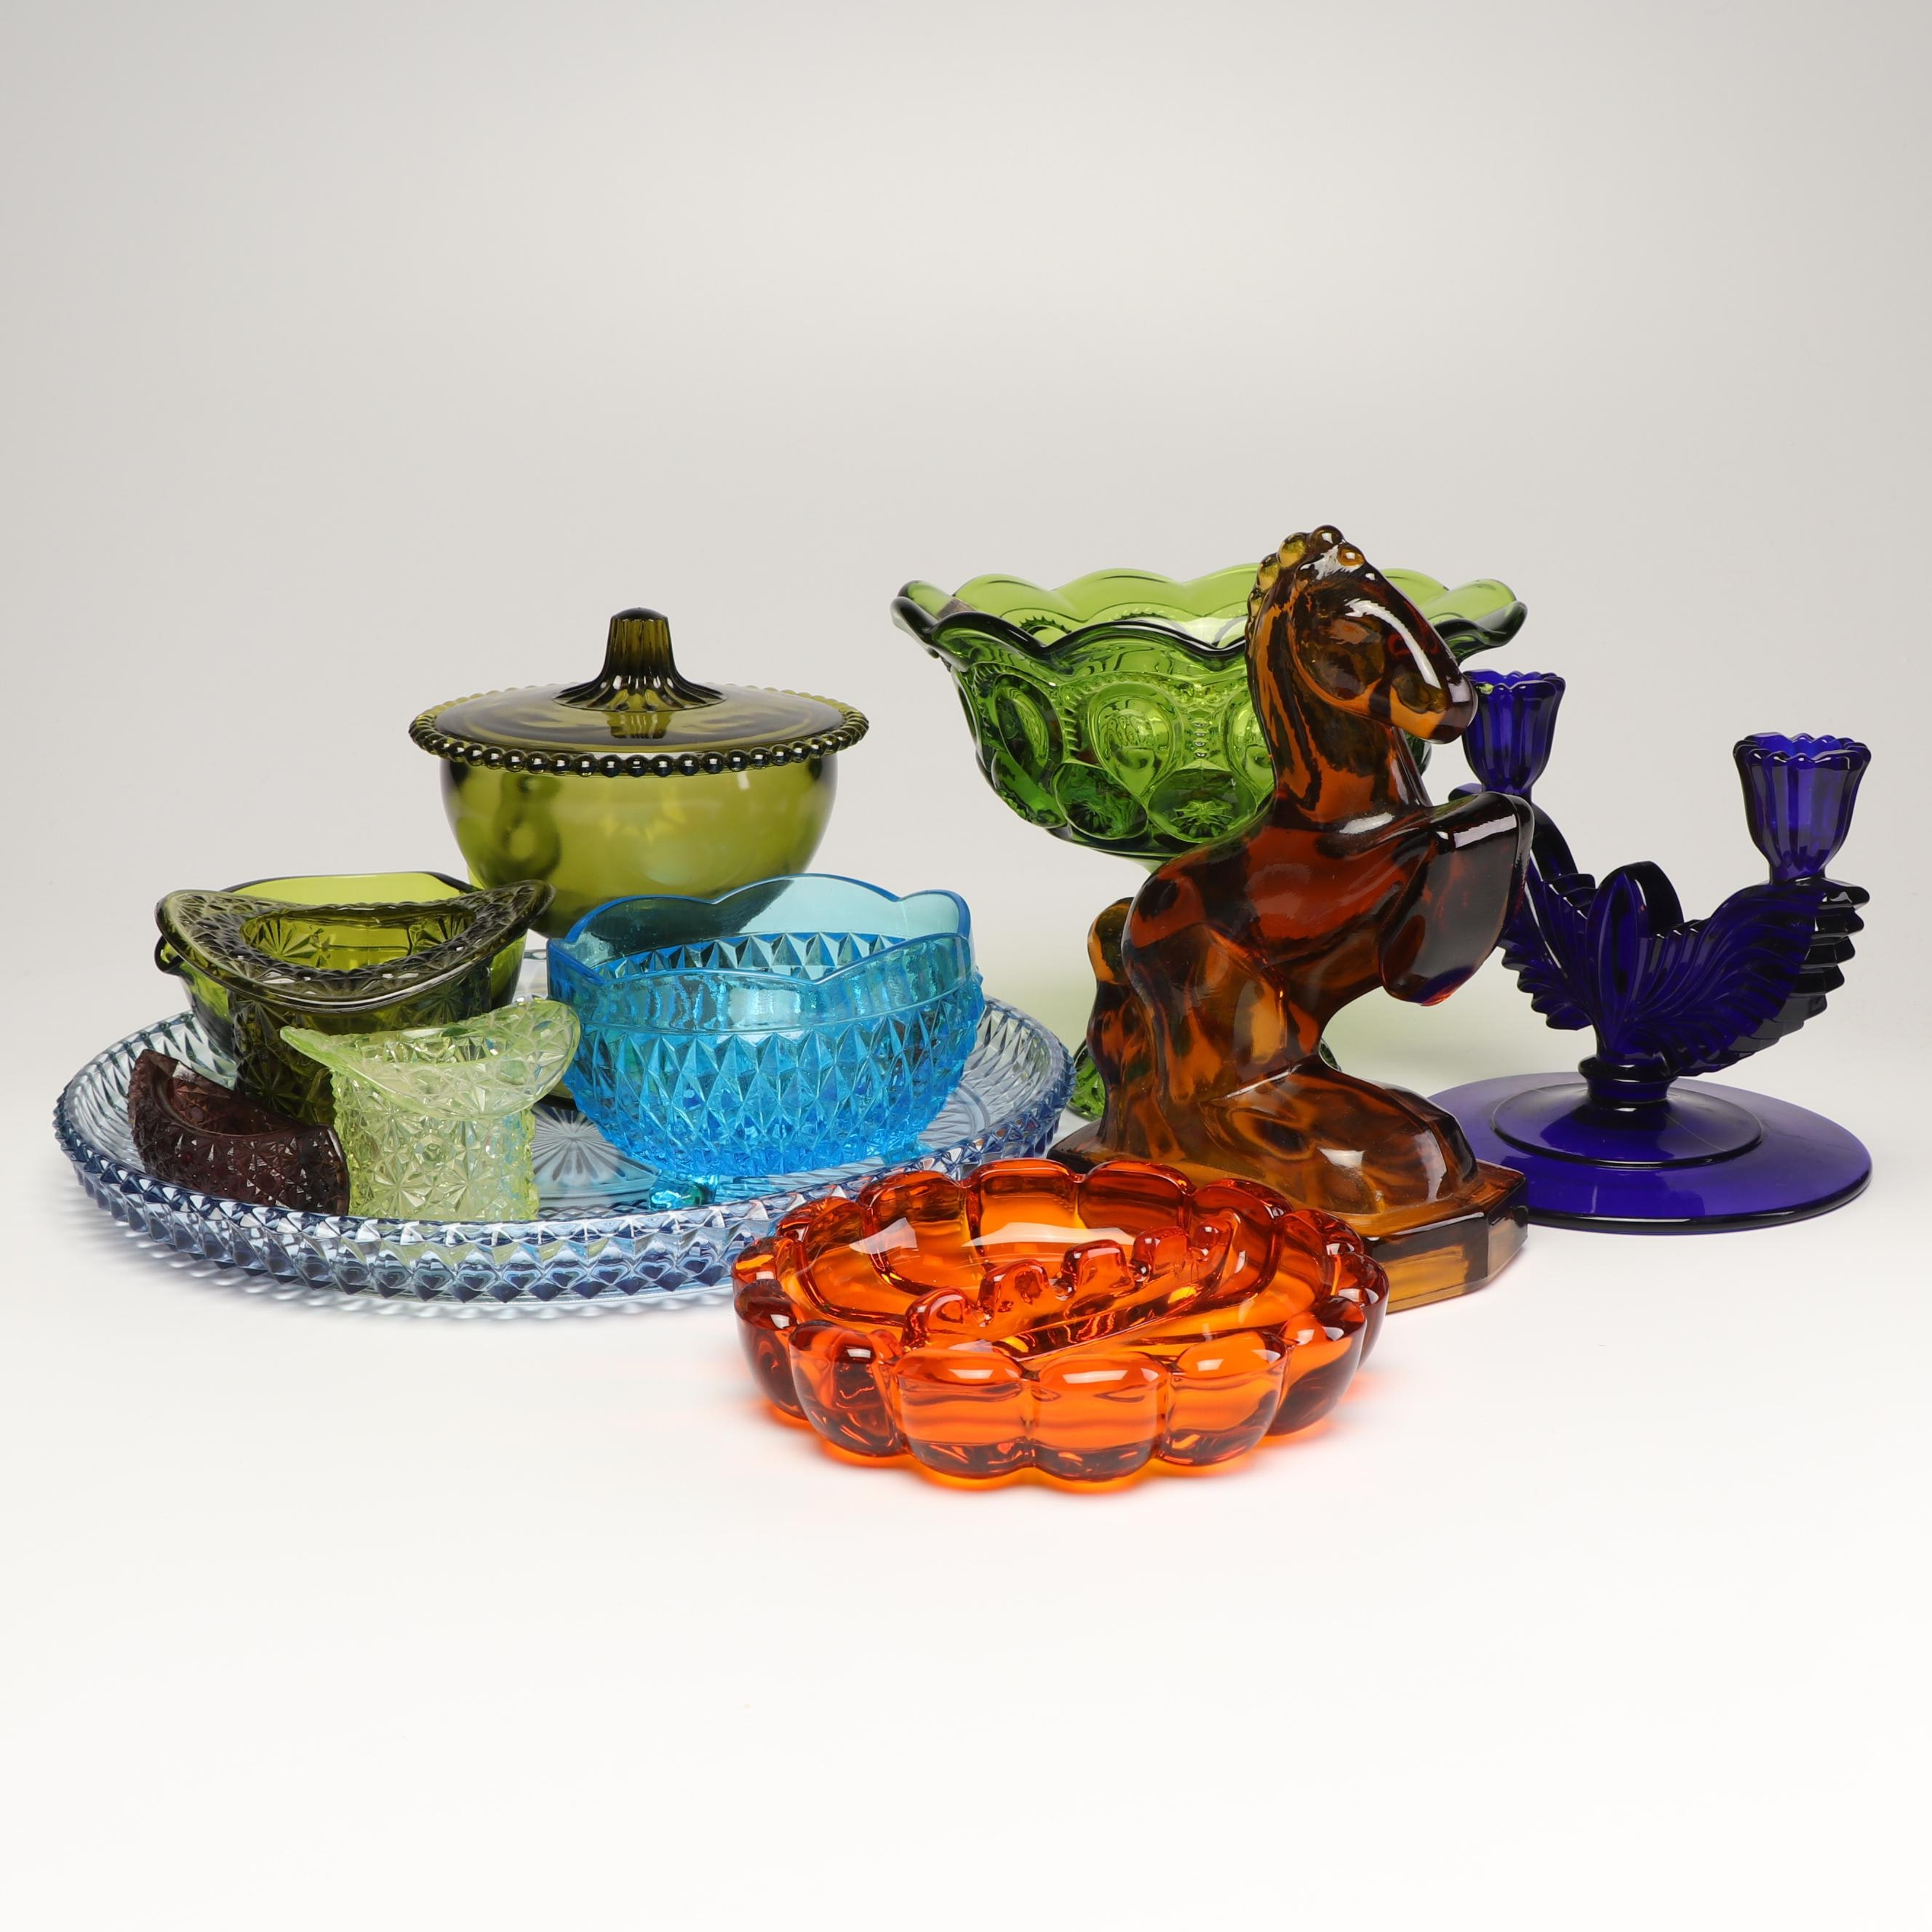 Fenton and Other Pressed Glass Tableware and Decor, 1920s-1970s